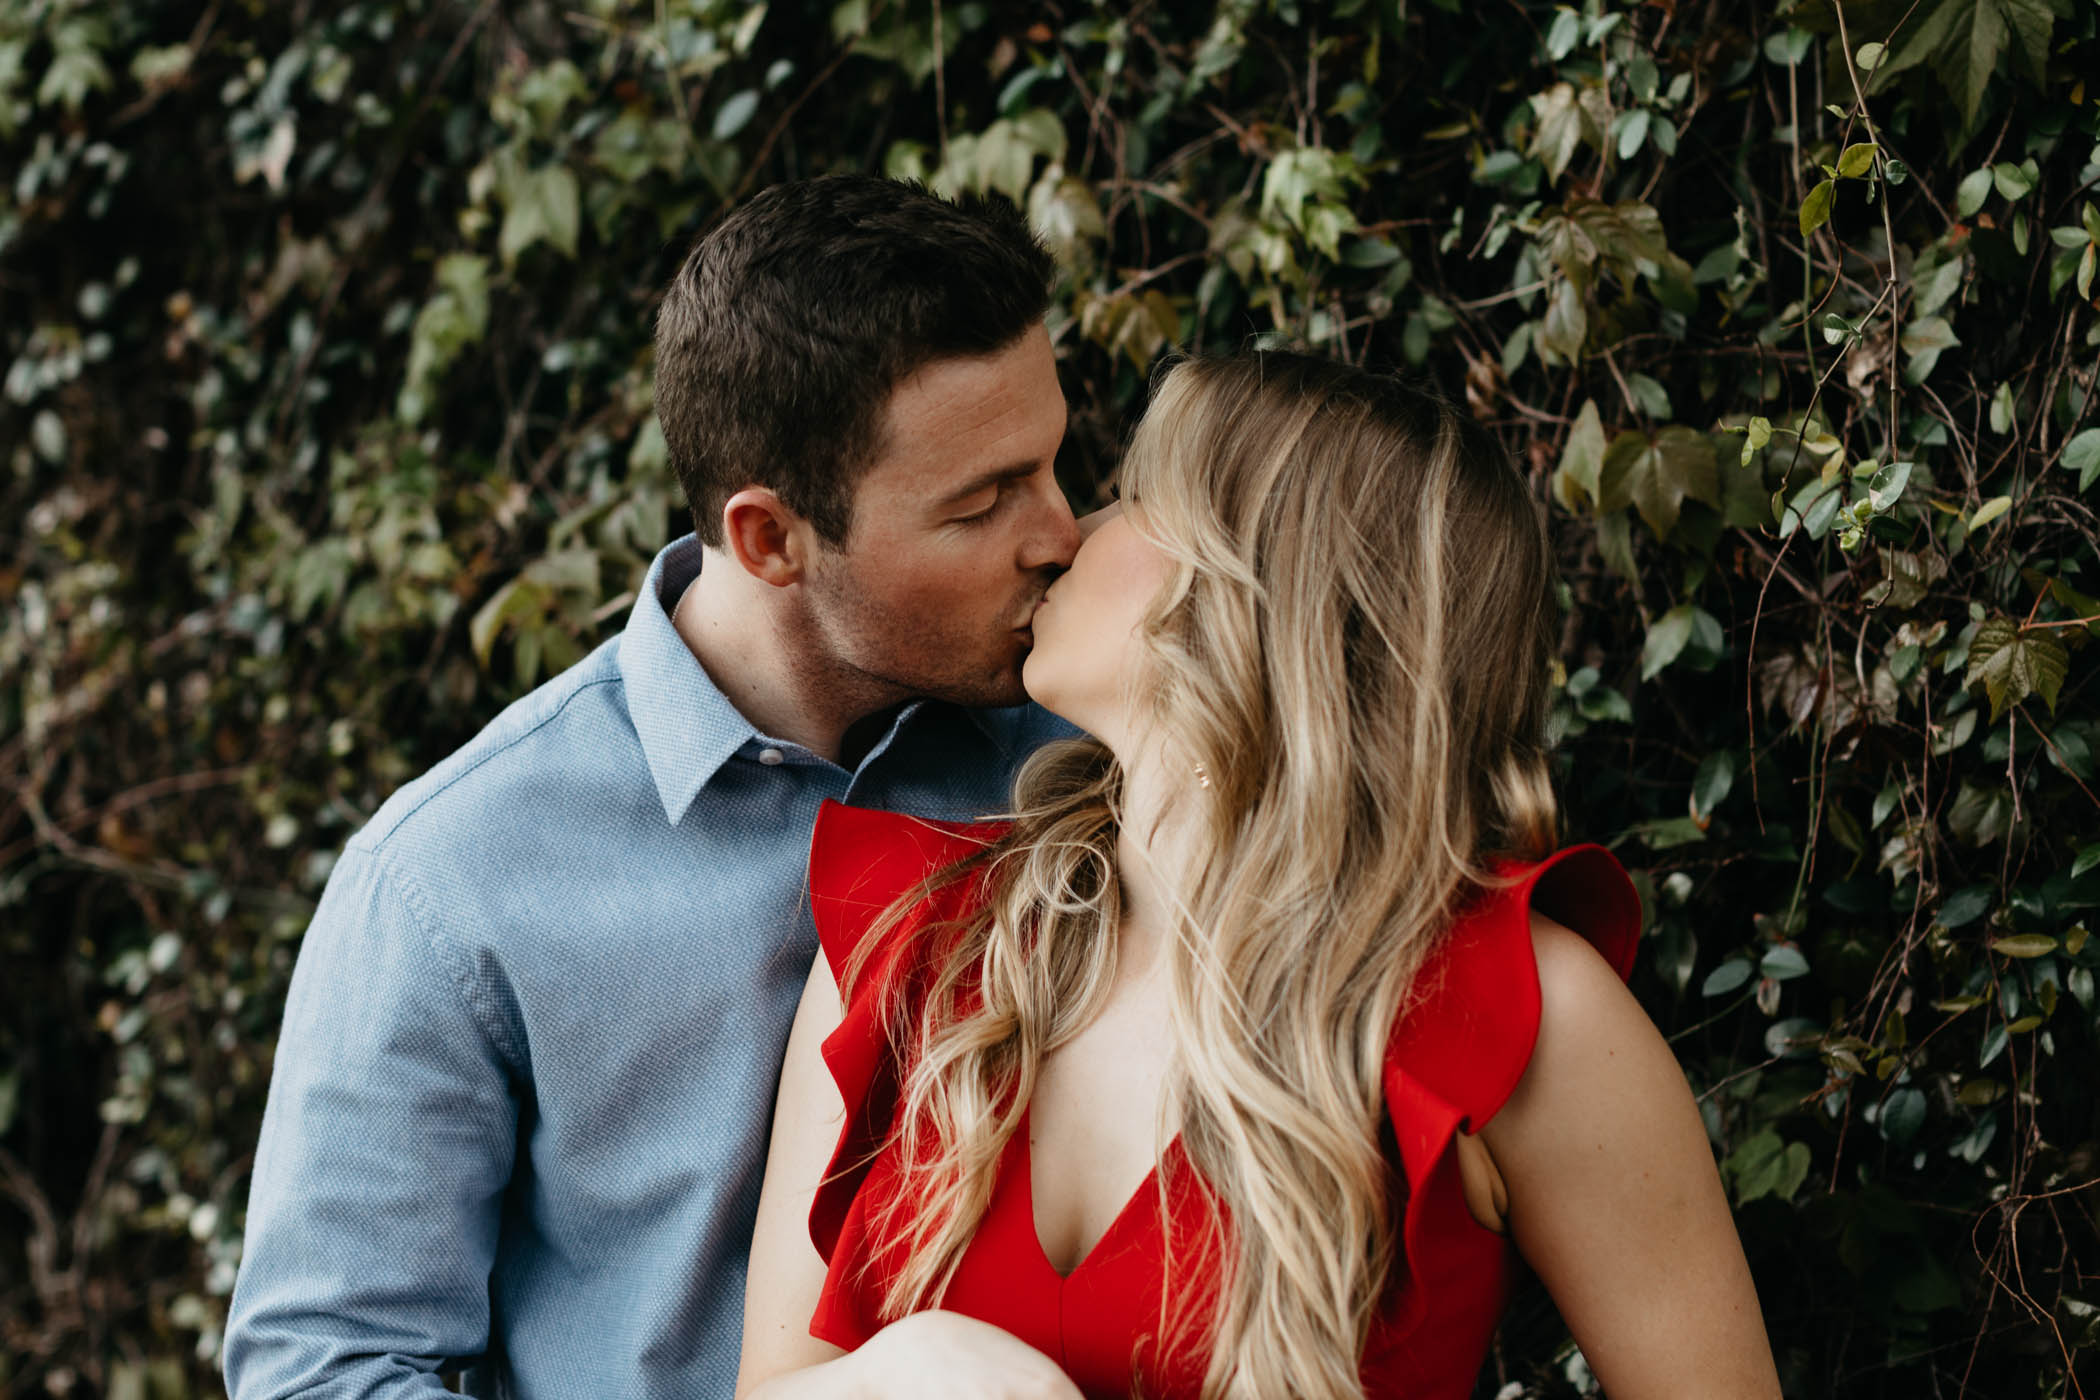 Girl in red dress kissing fiancé in front of vine wall